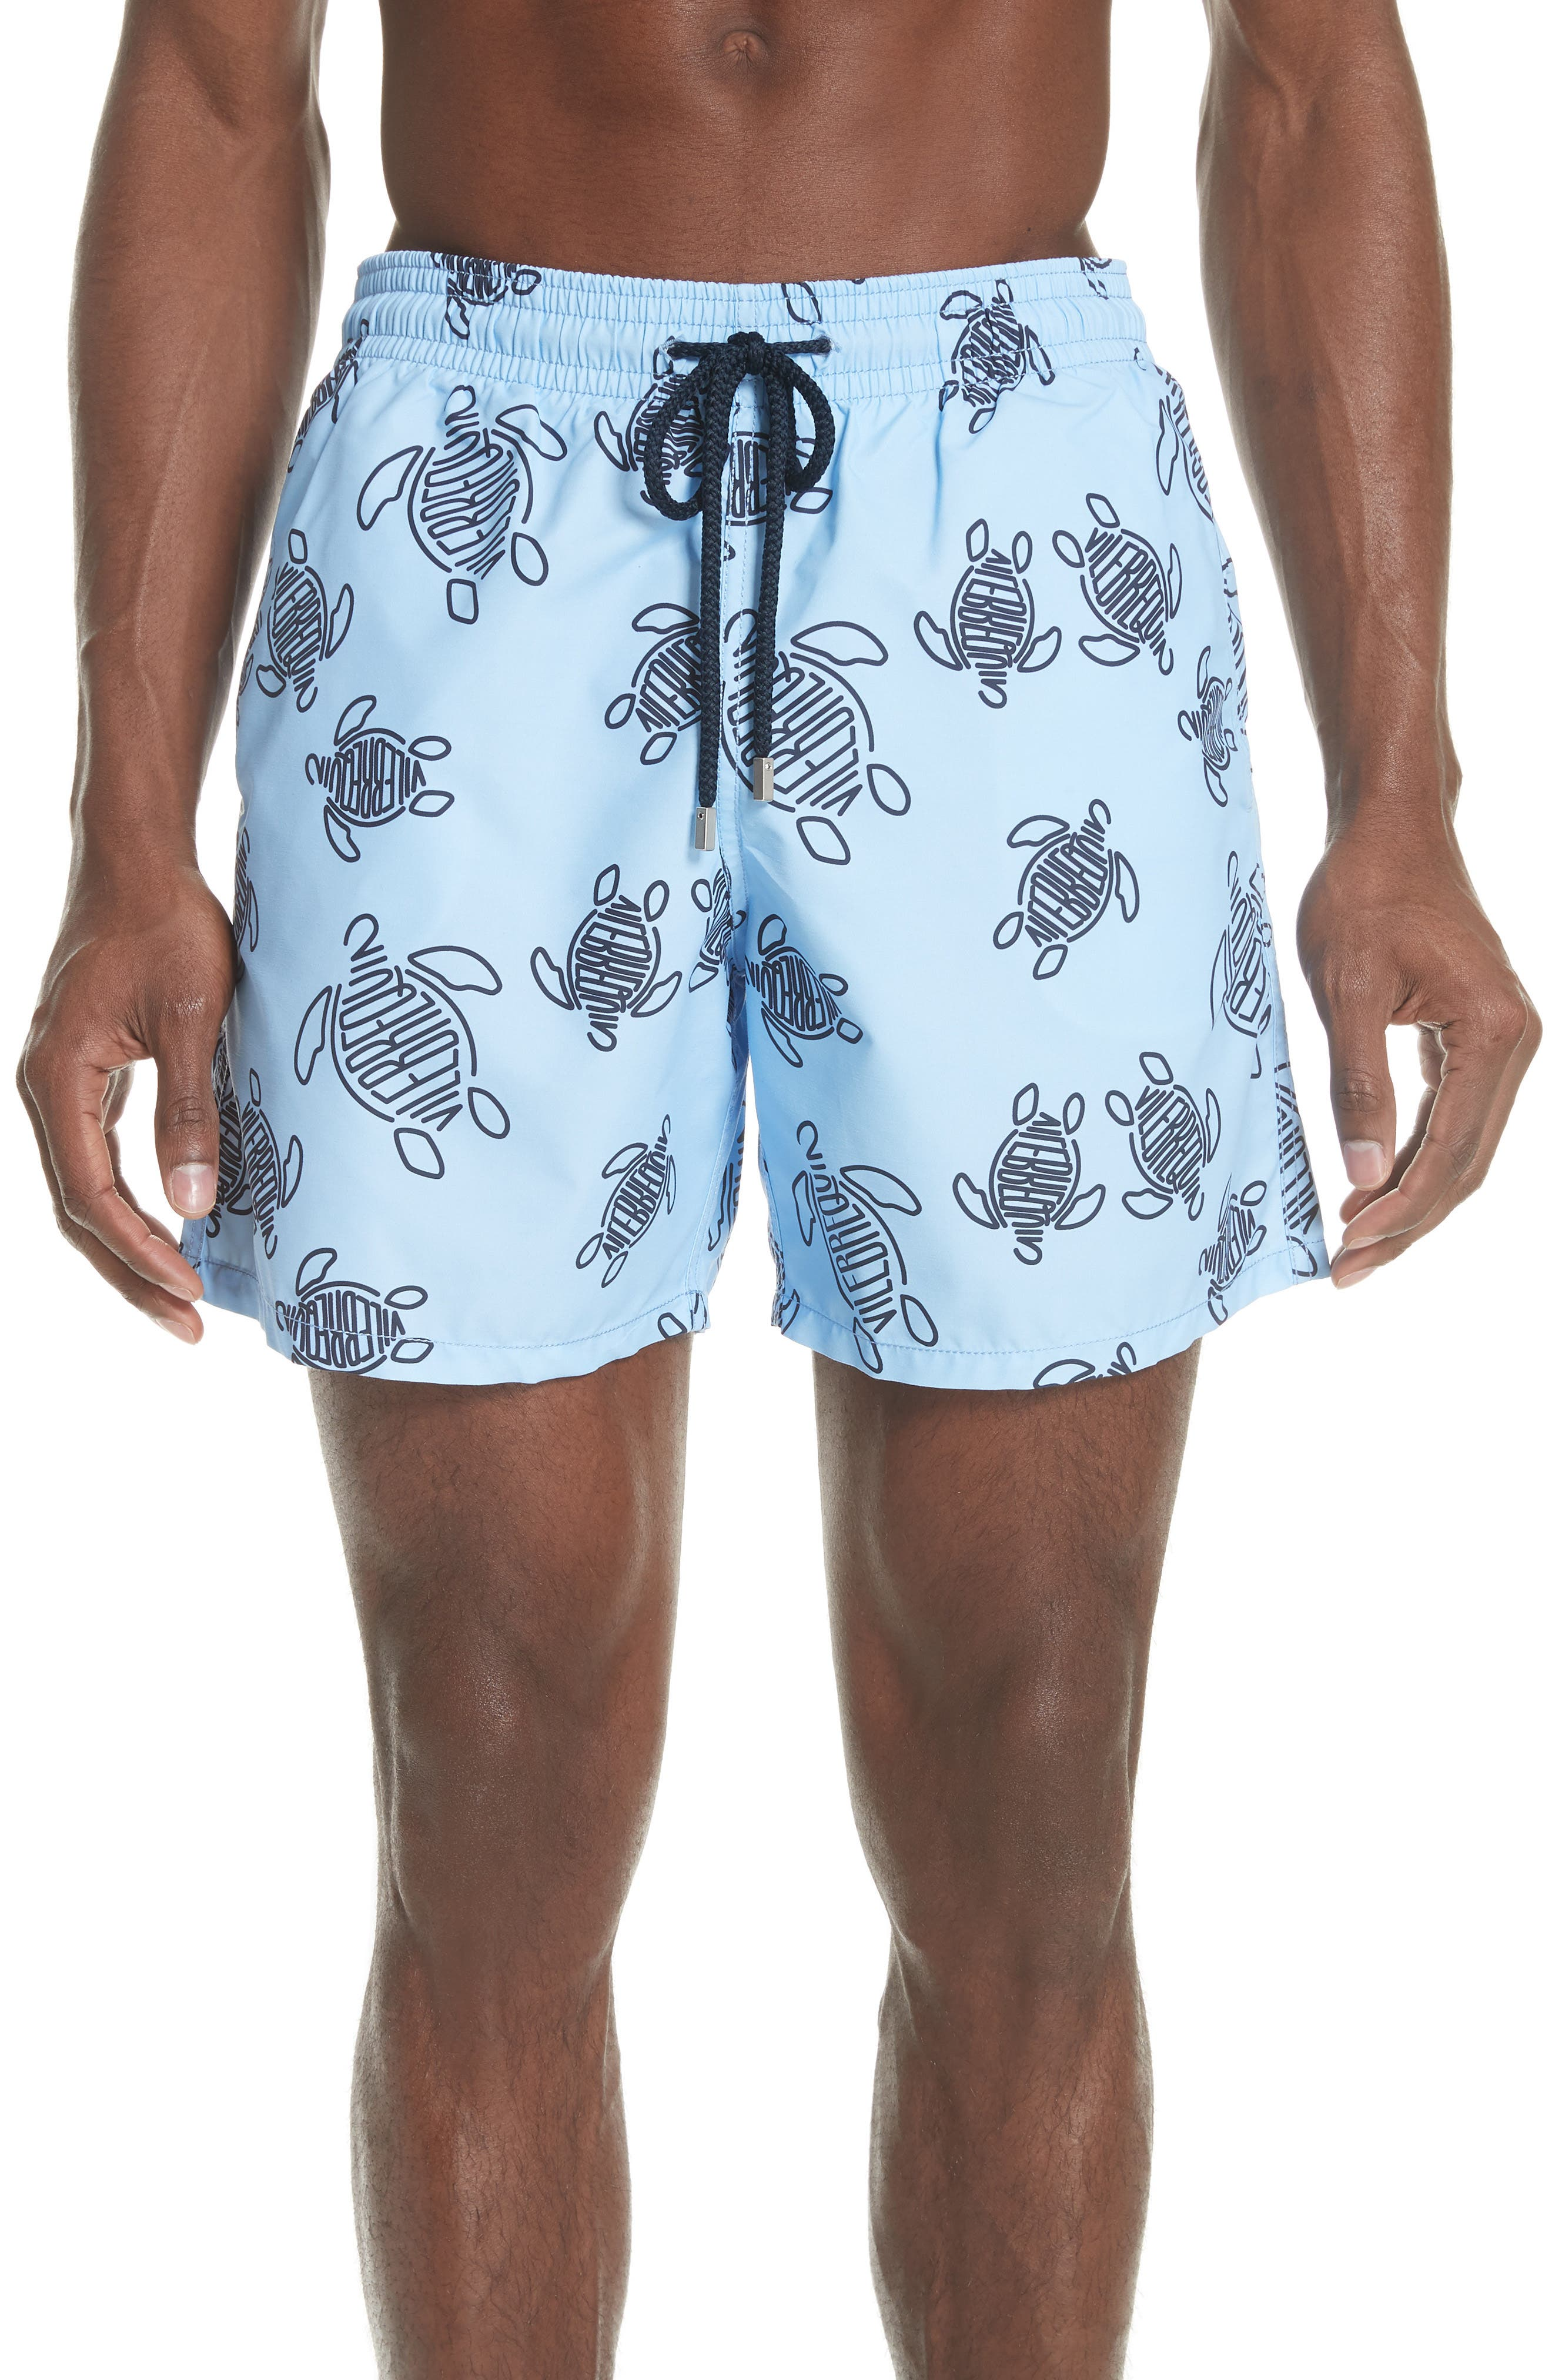 New Vilebrequin Turtle Print Swim Trunks,                             Main thumbnail 1, color,                             450